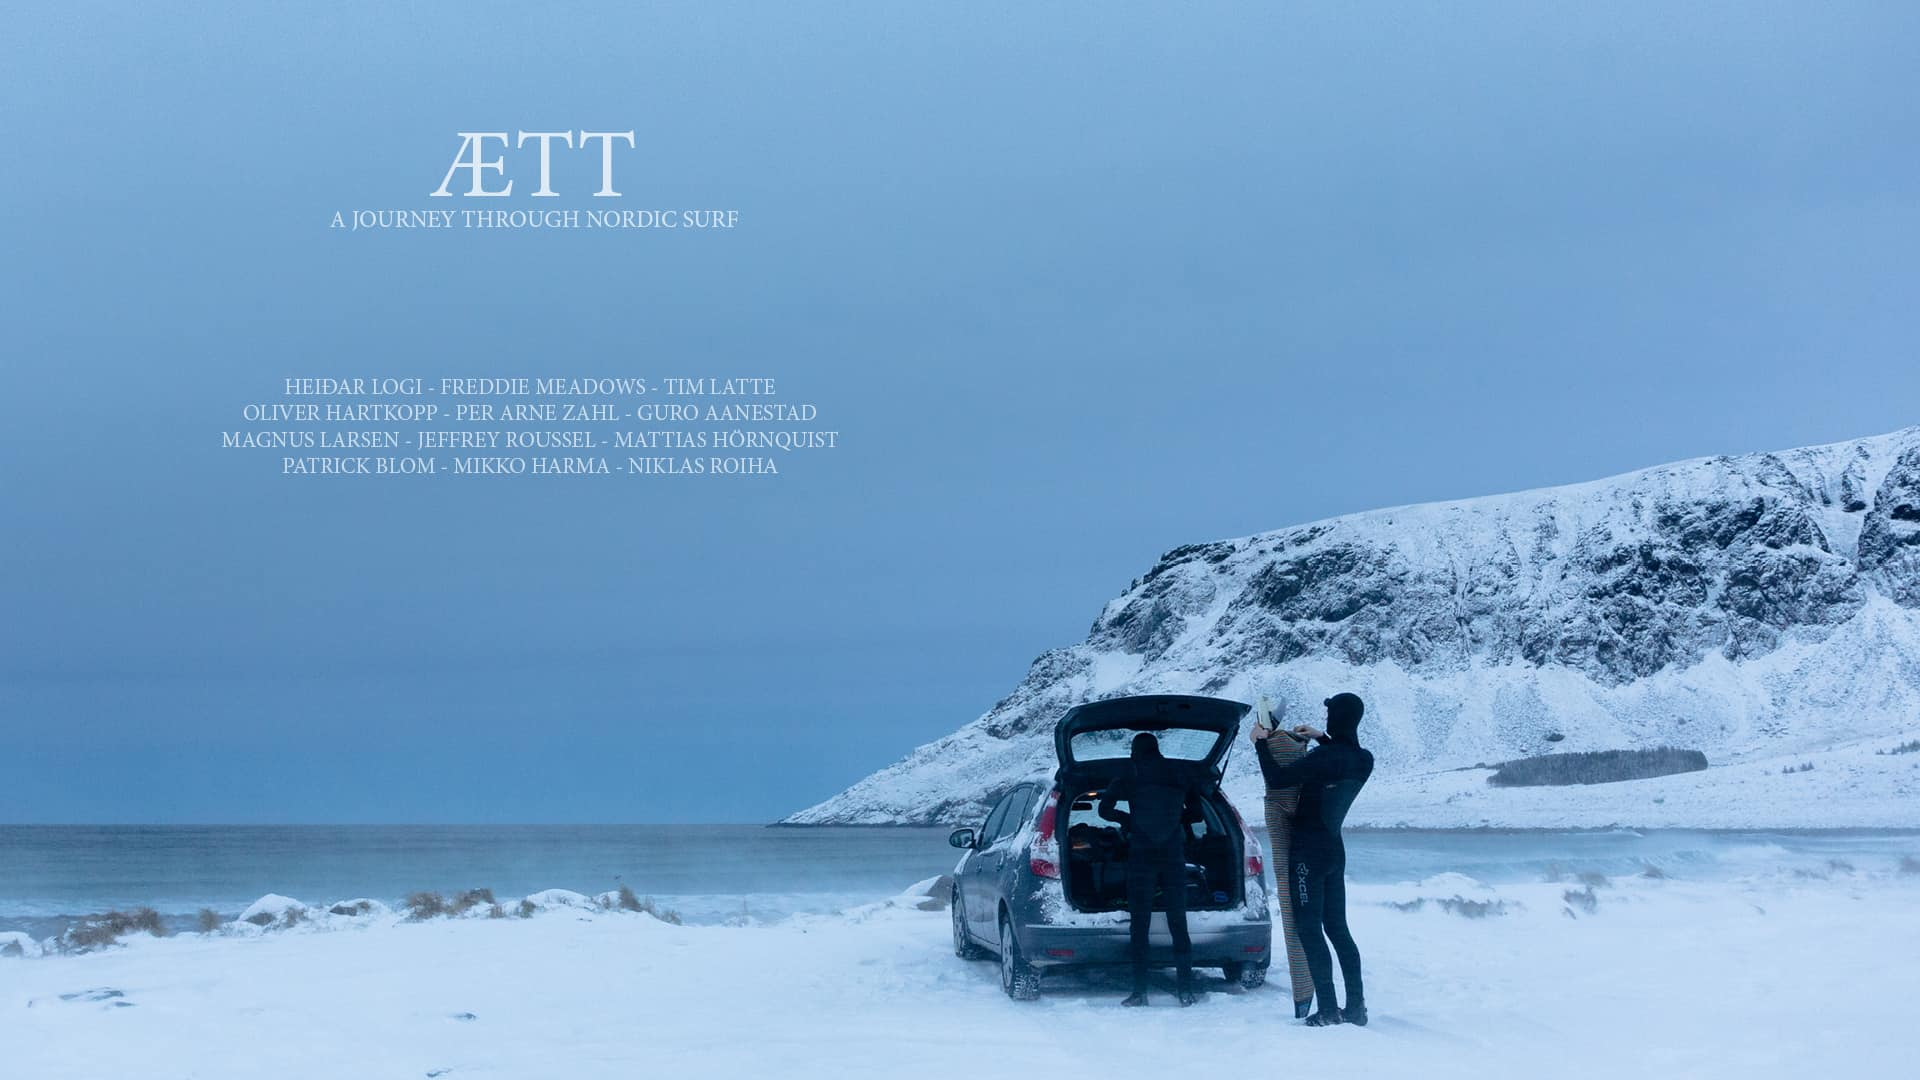 Aett - A journey through nordic surf